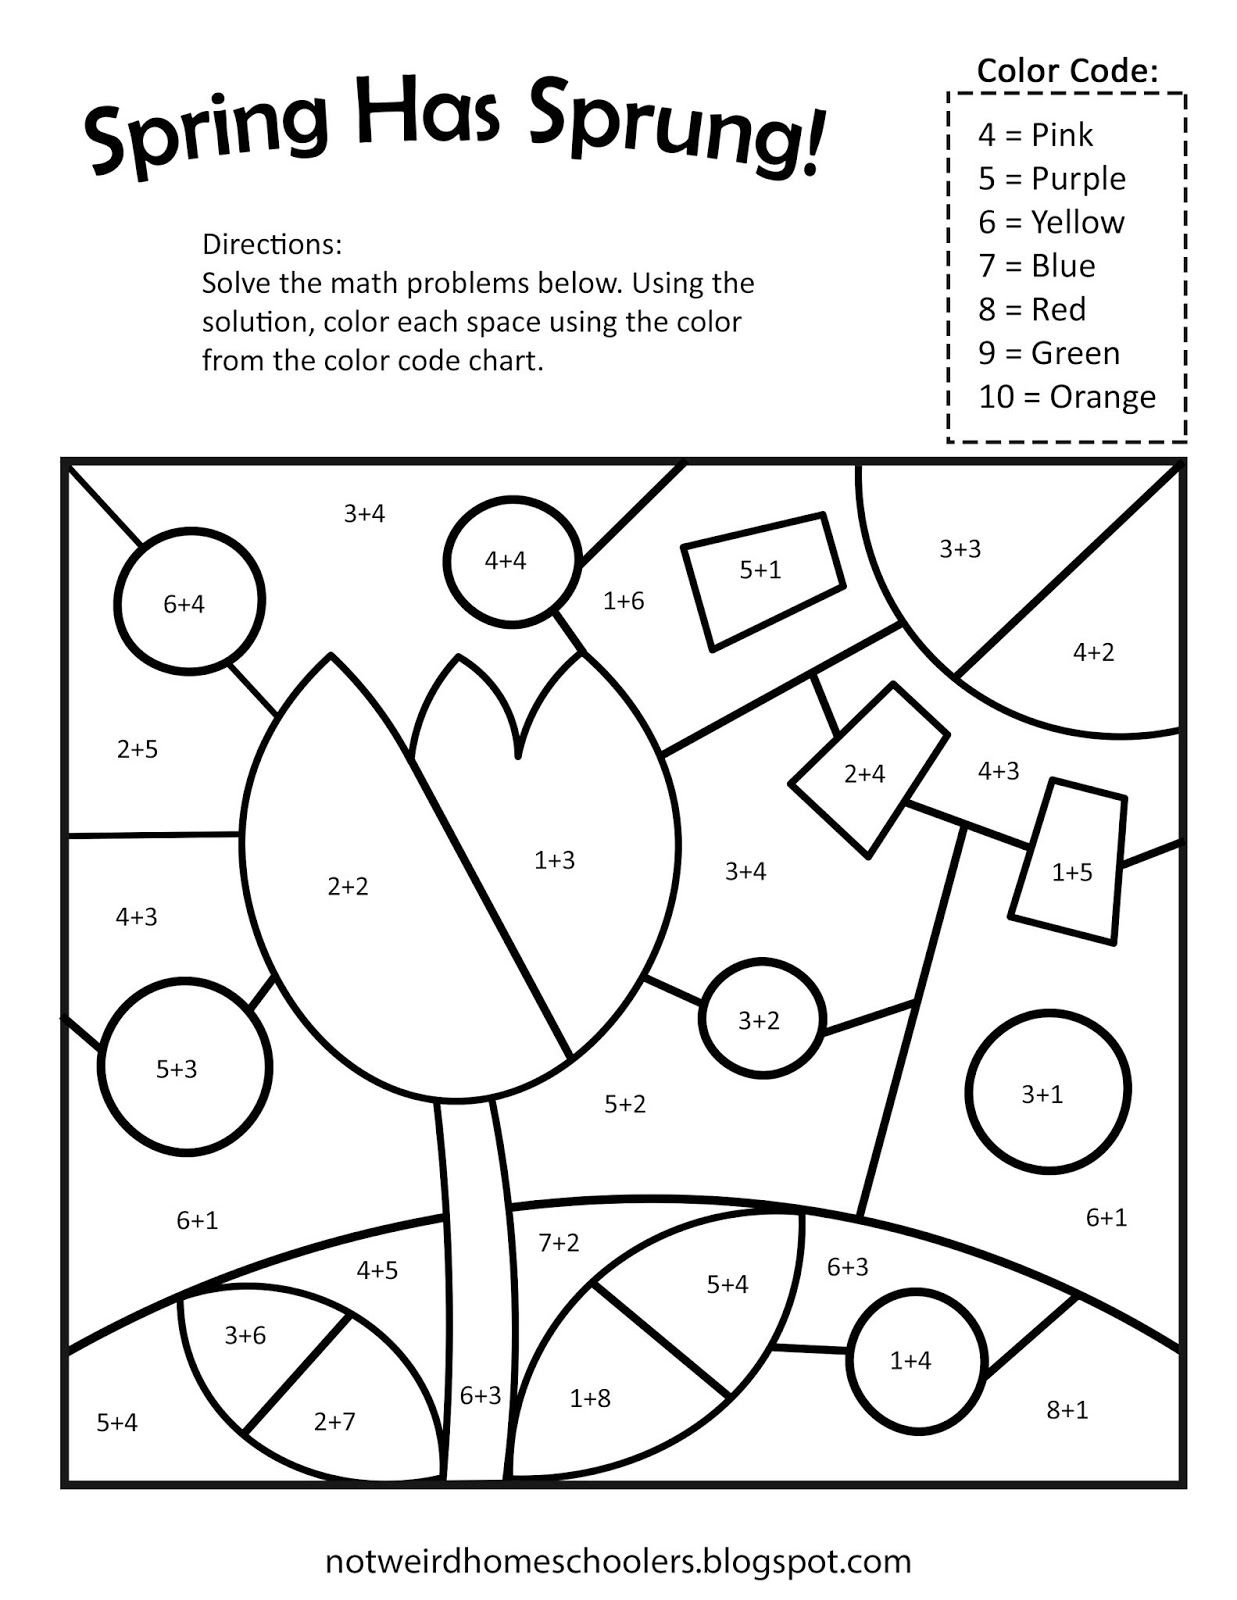 Free Homeschooling Resource Math Coloring Worksheet For